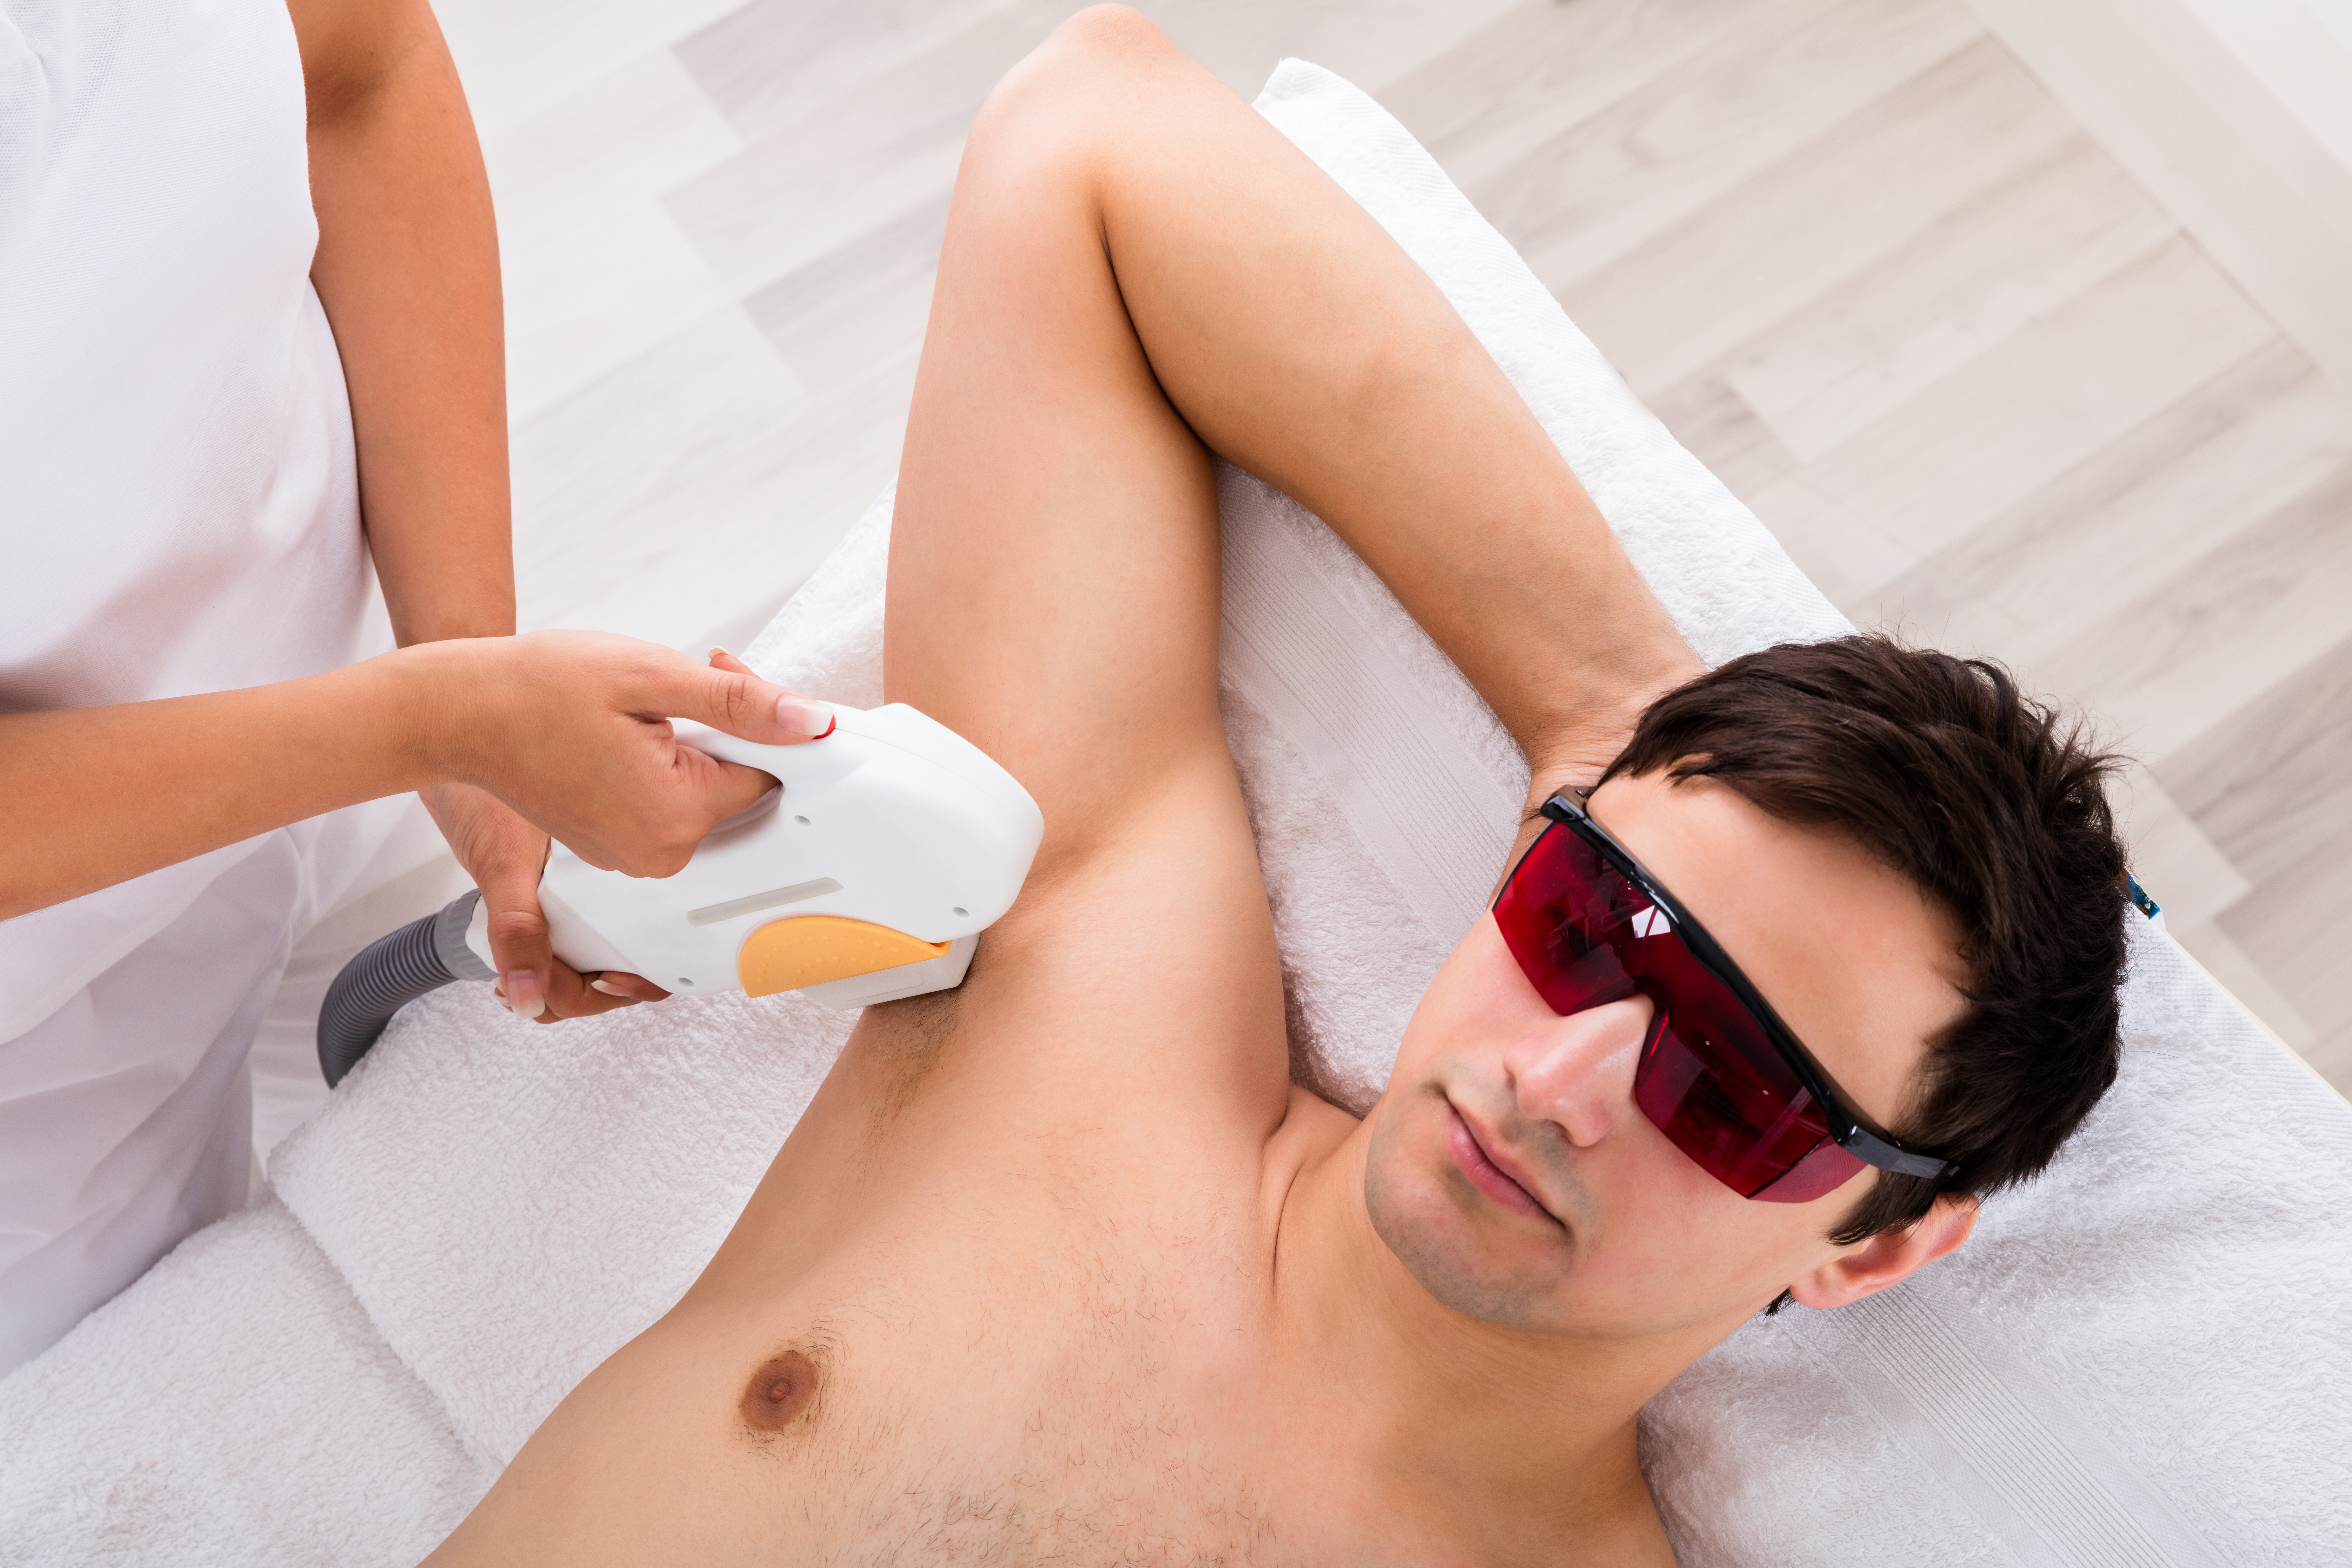 Is hair removal safe